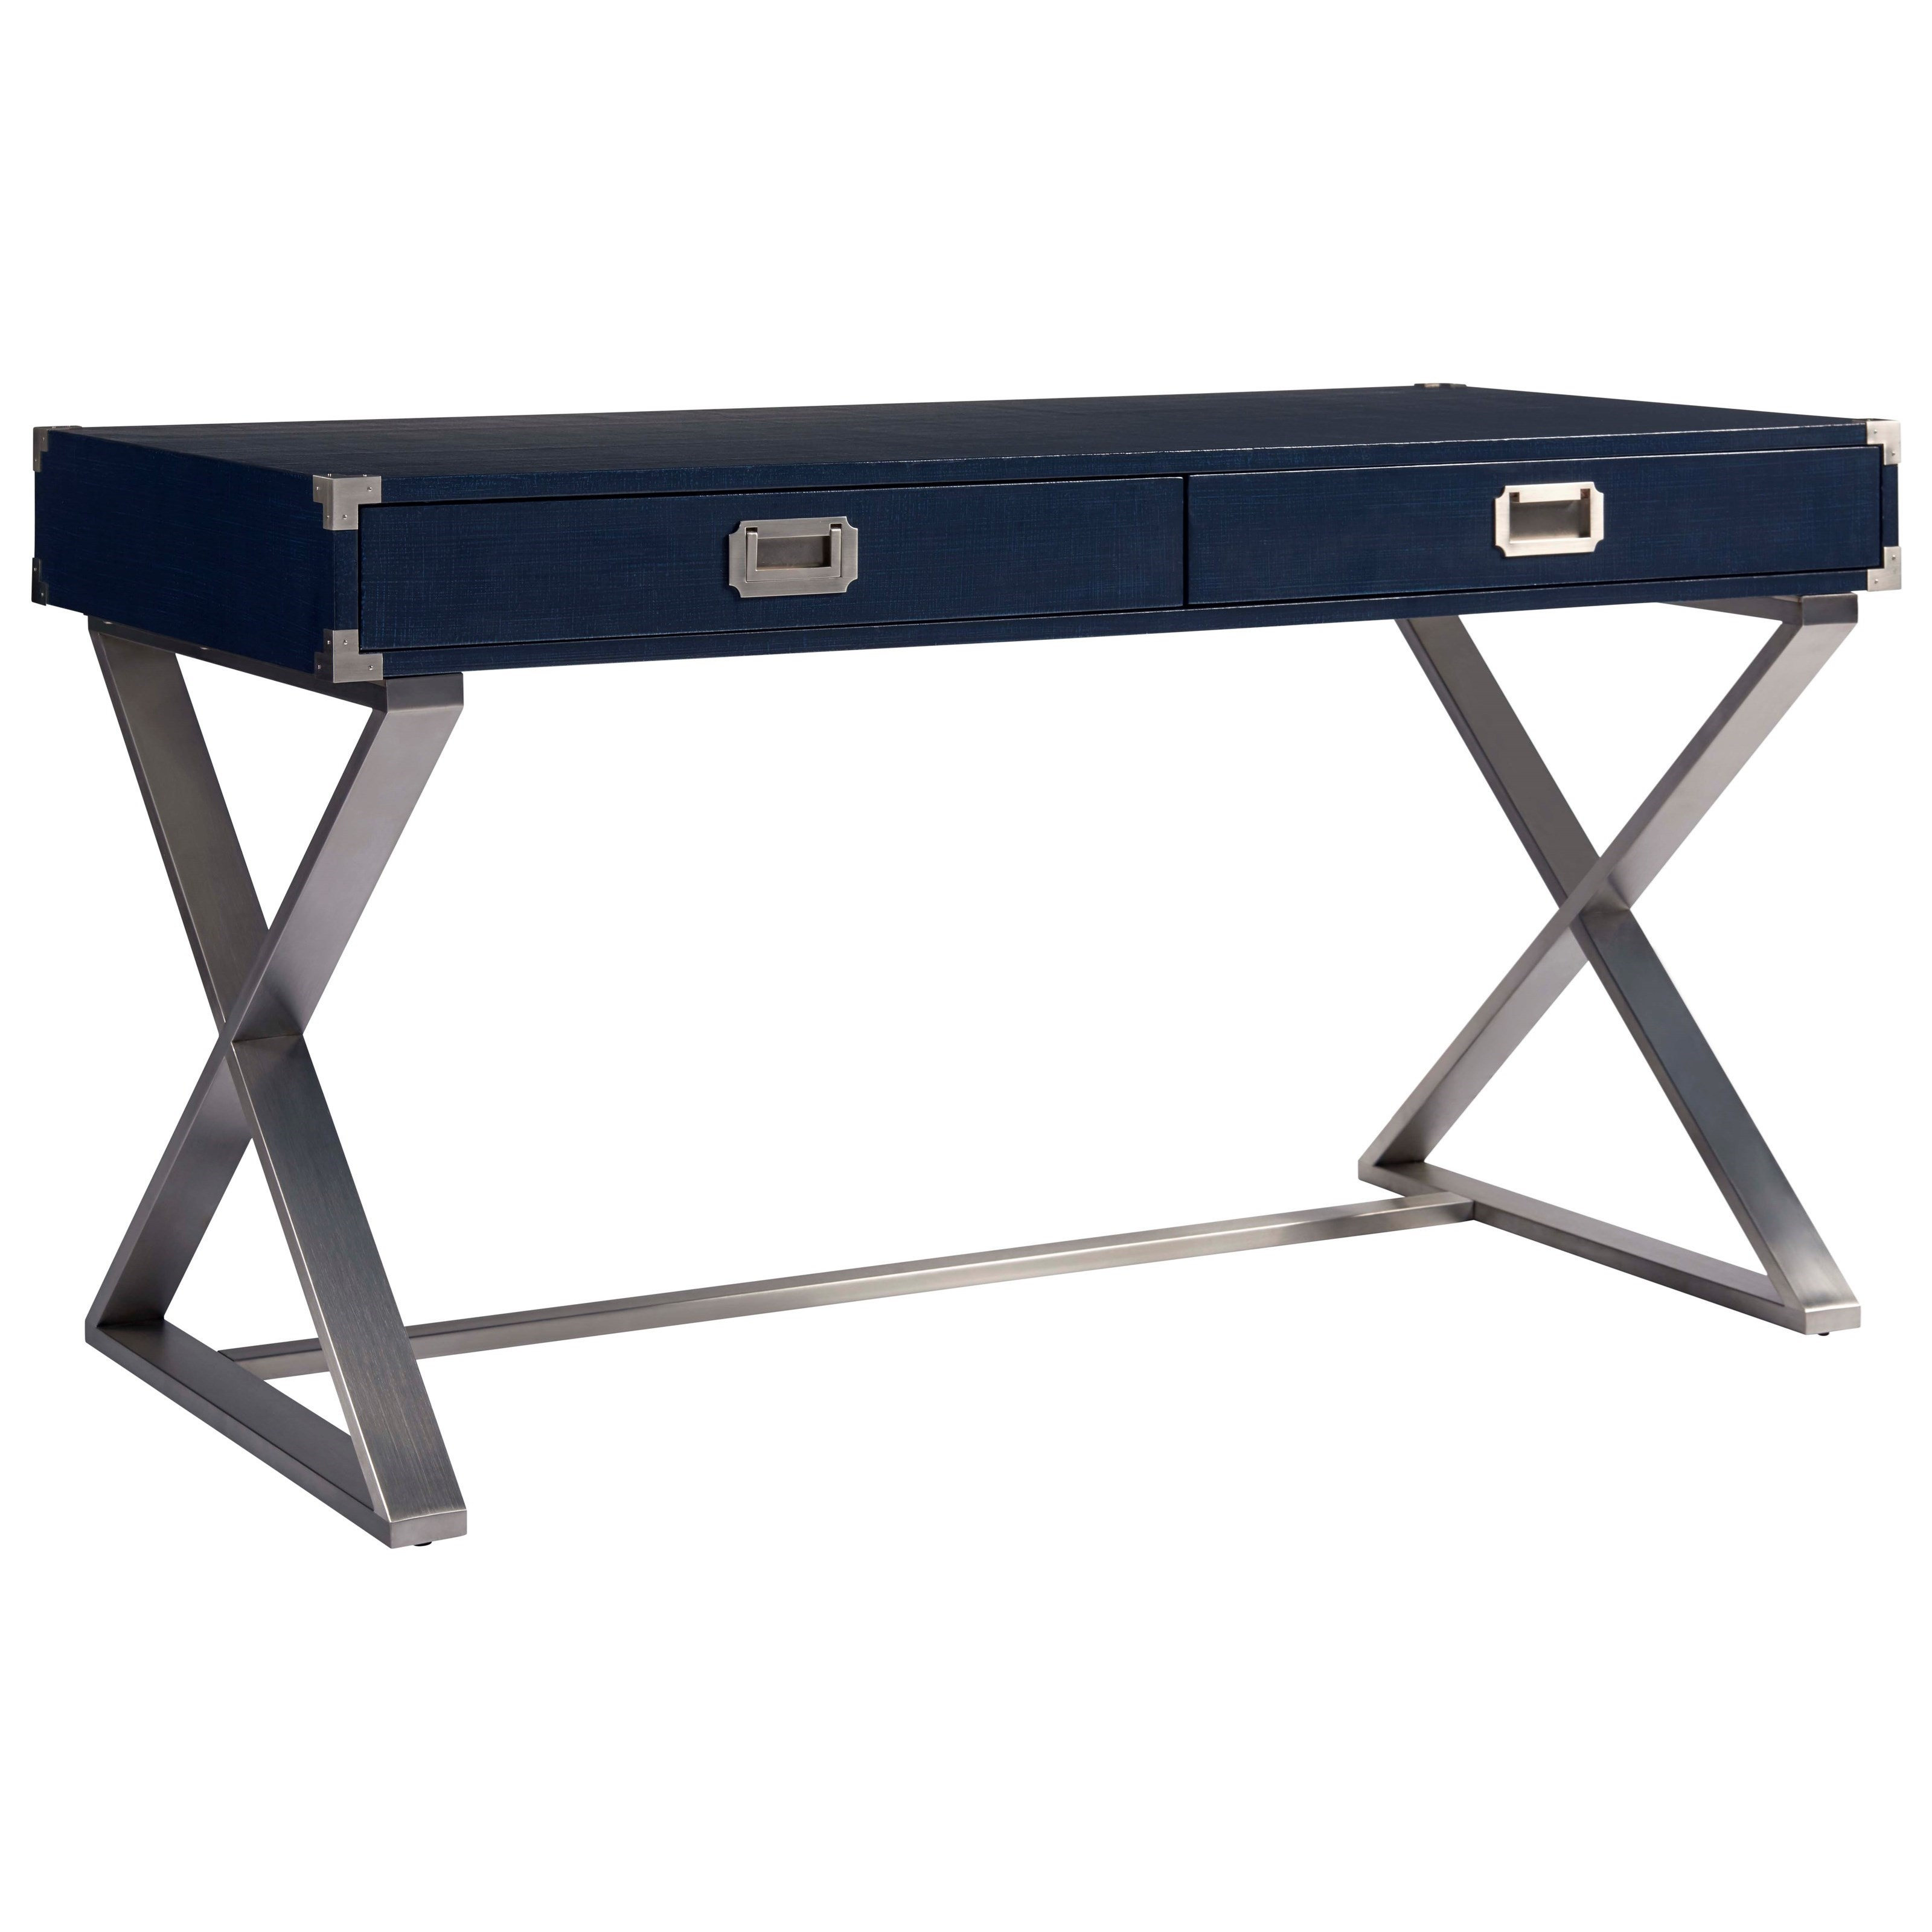 Coastal Living Home - Escape Postcard Writing Table by Universal at HomeWorld Furniture